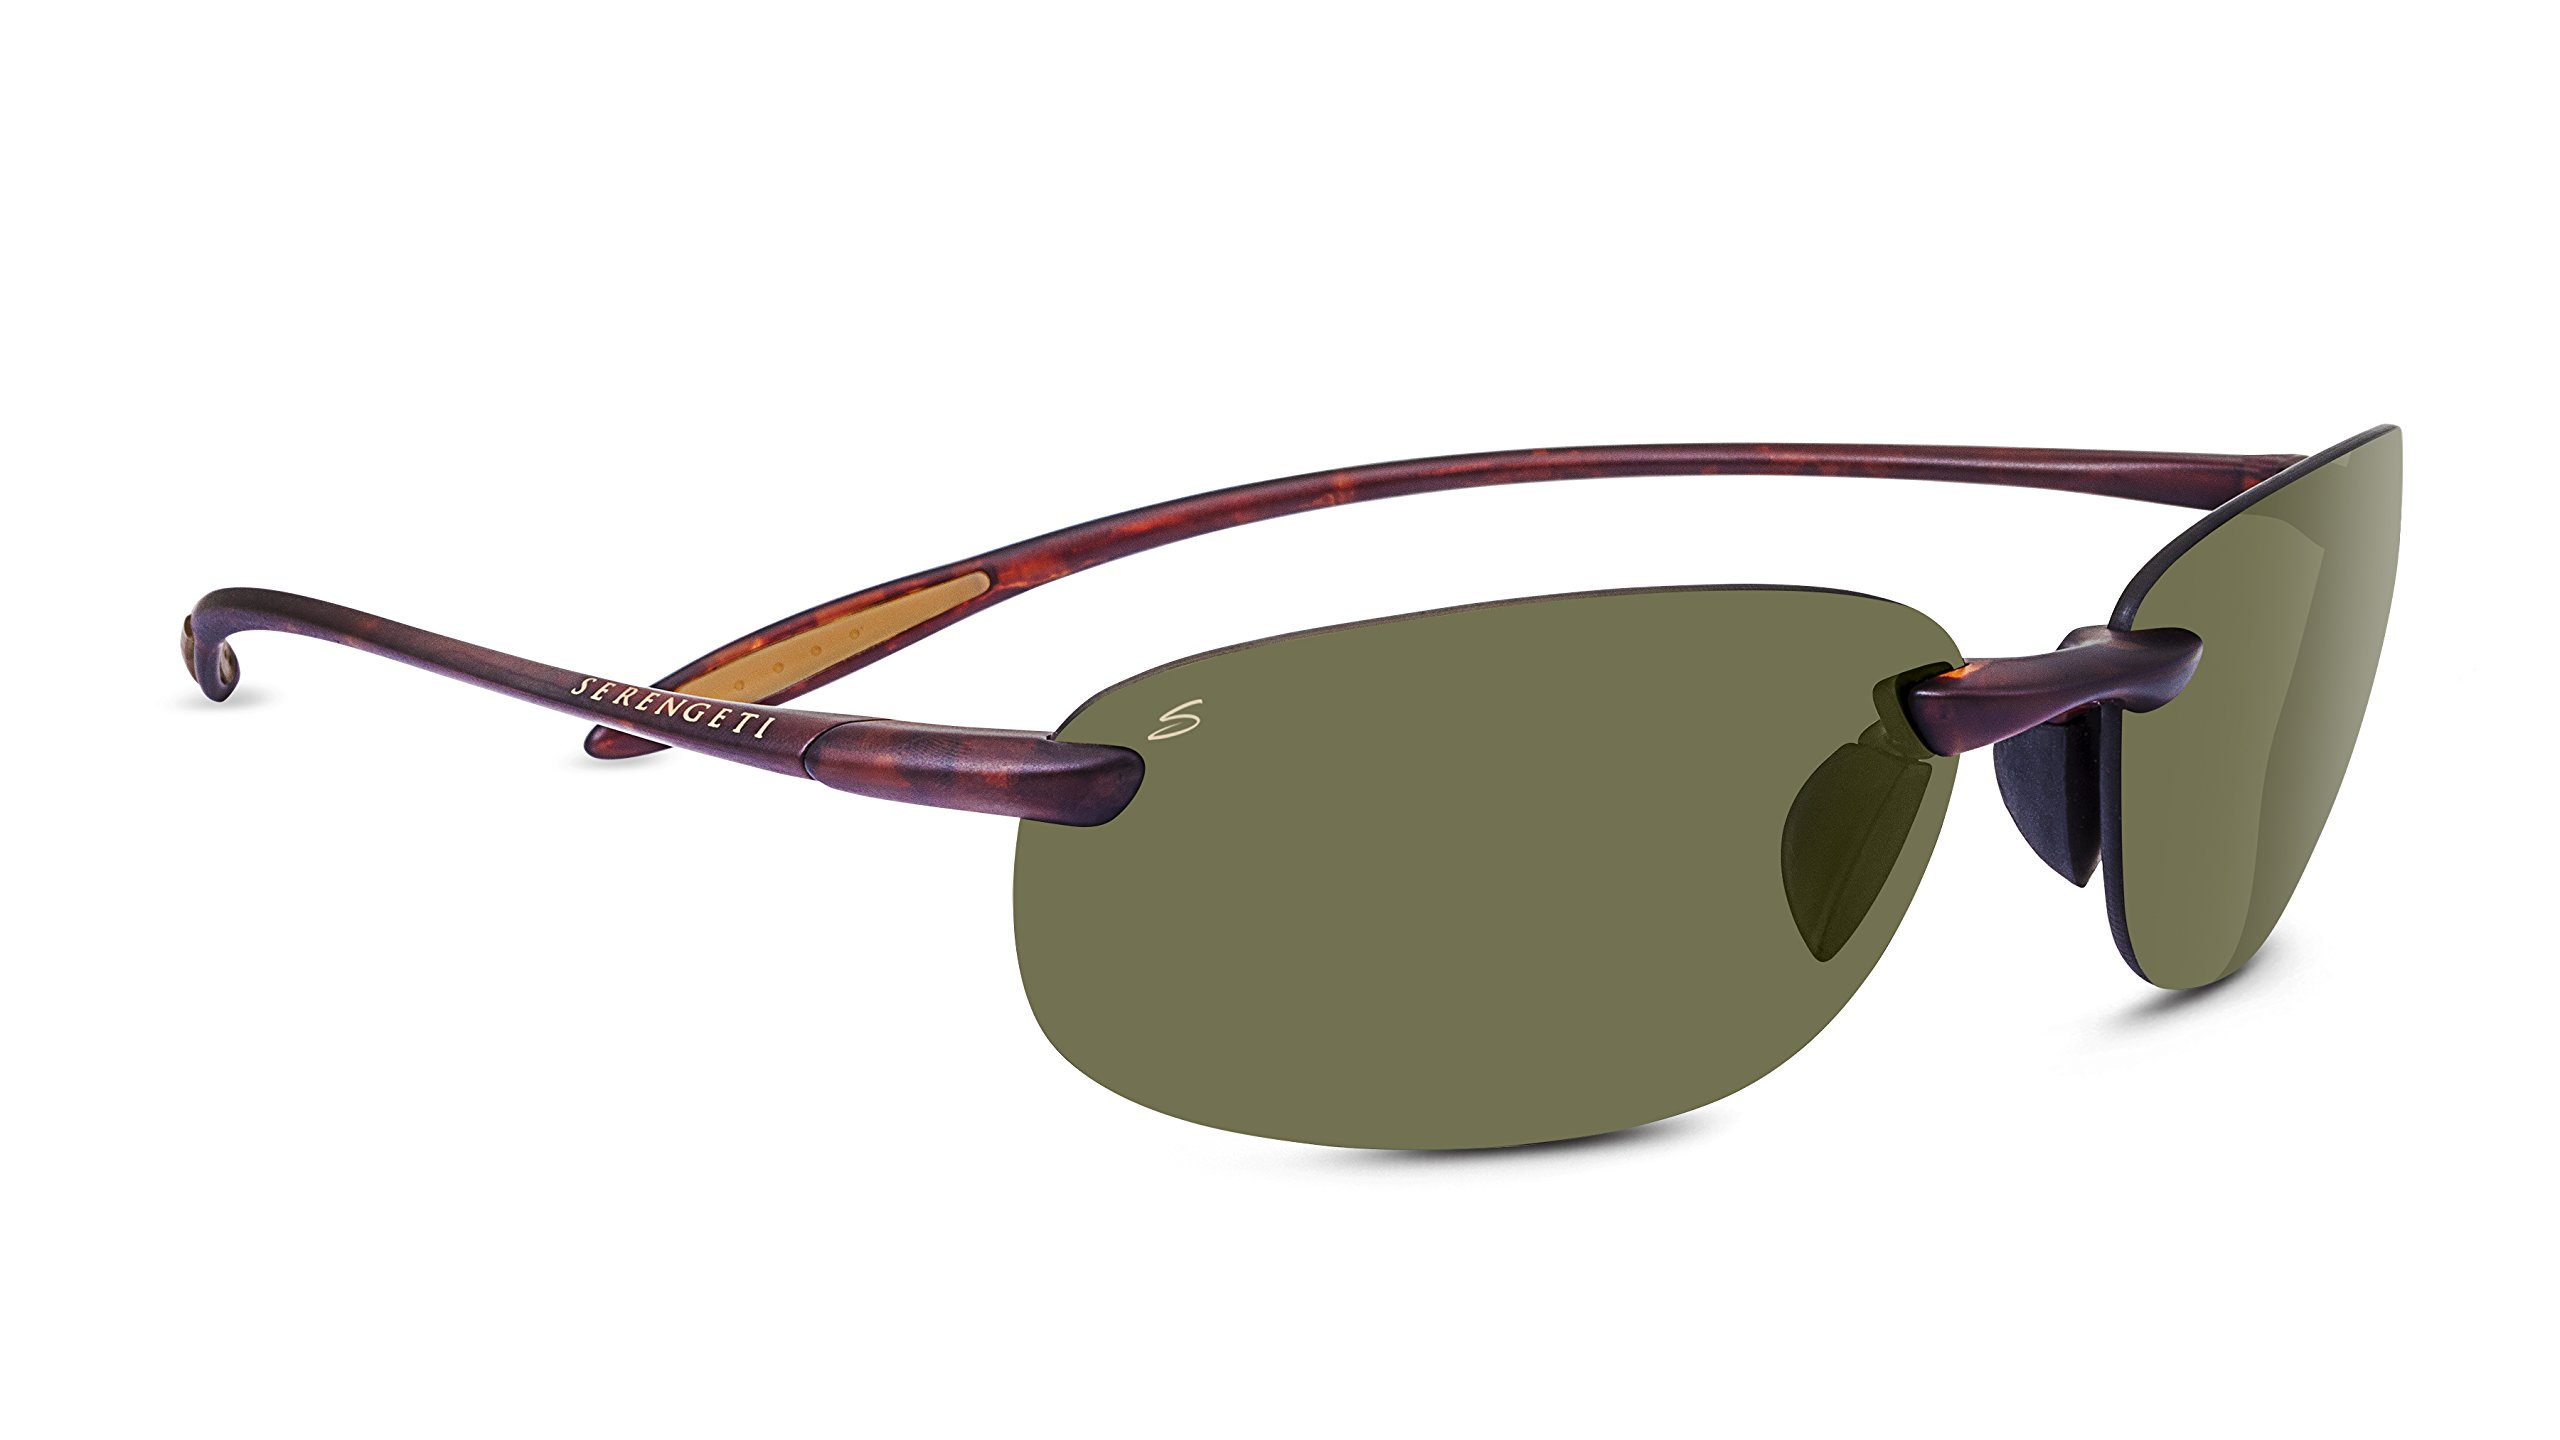 Serengeti 8370 Nuvino Polar PhD 555NM Sunglasses, Satin Tortoise Frame by Serengeti